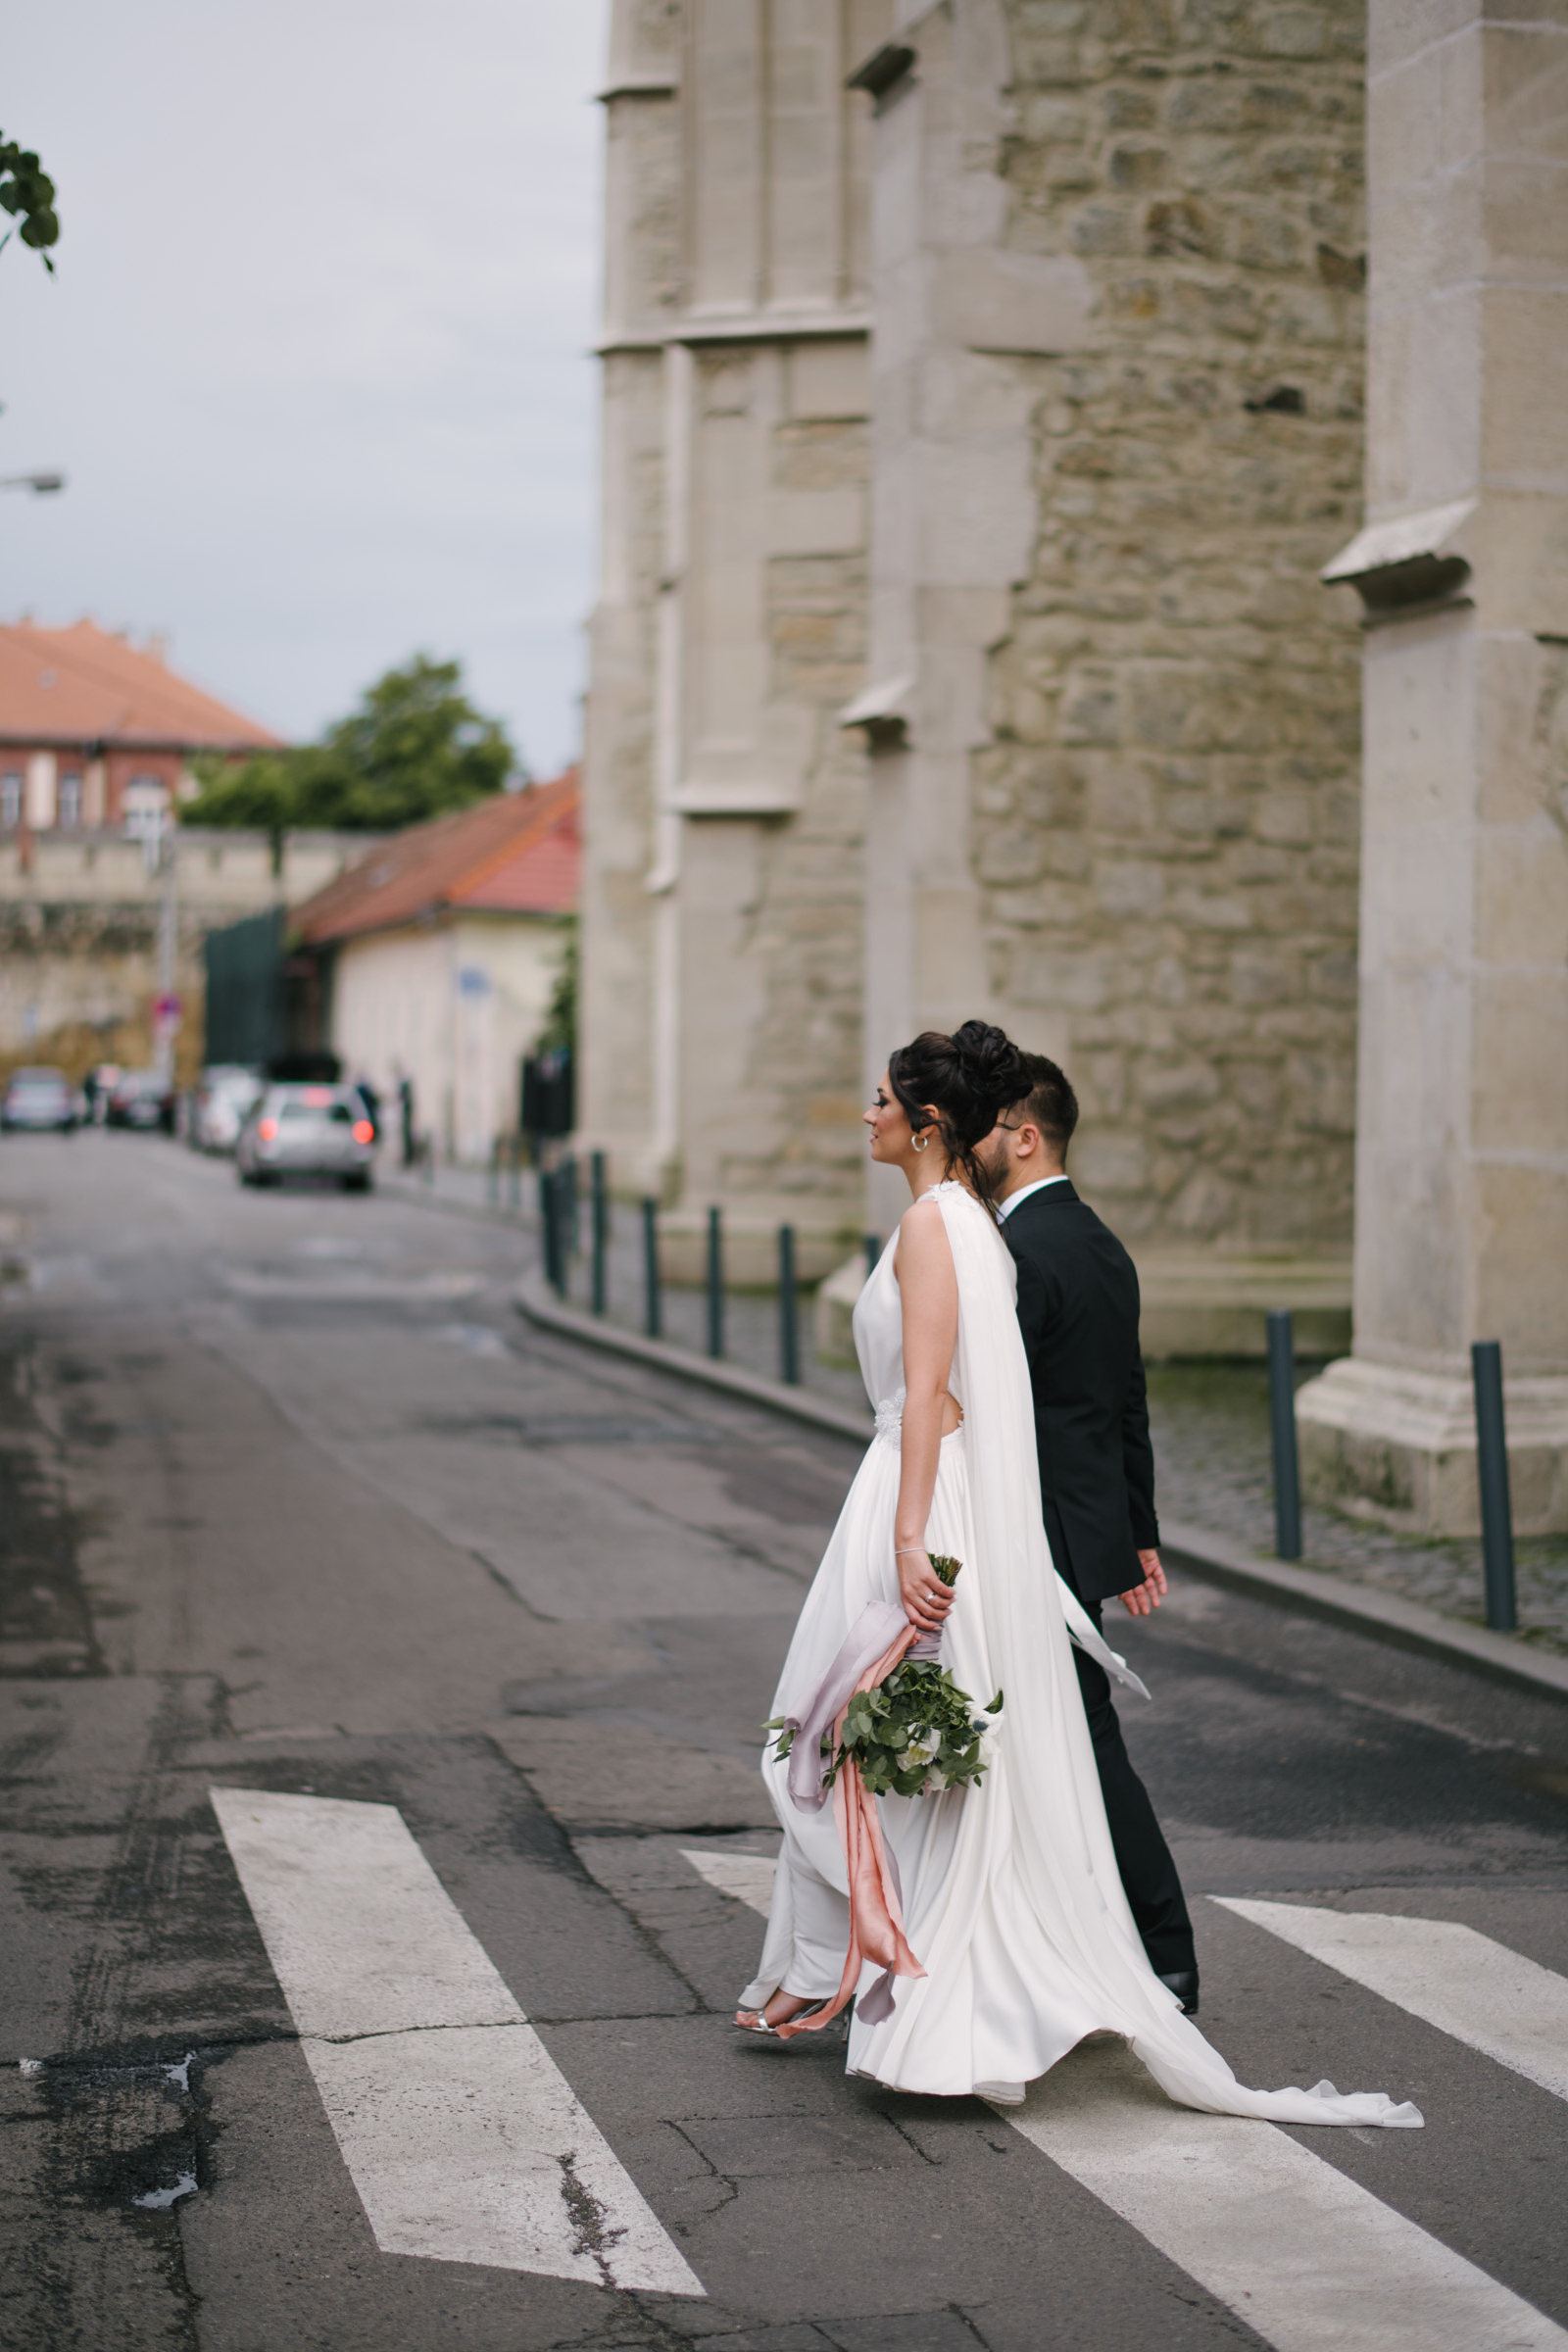 Cluj Streets Wedding Photo Session